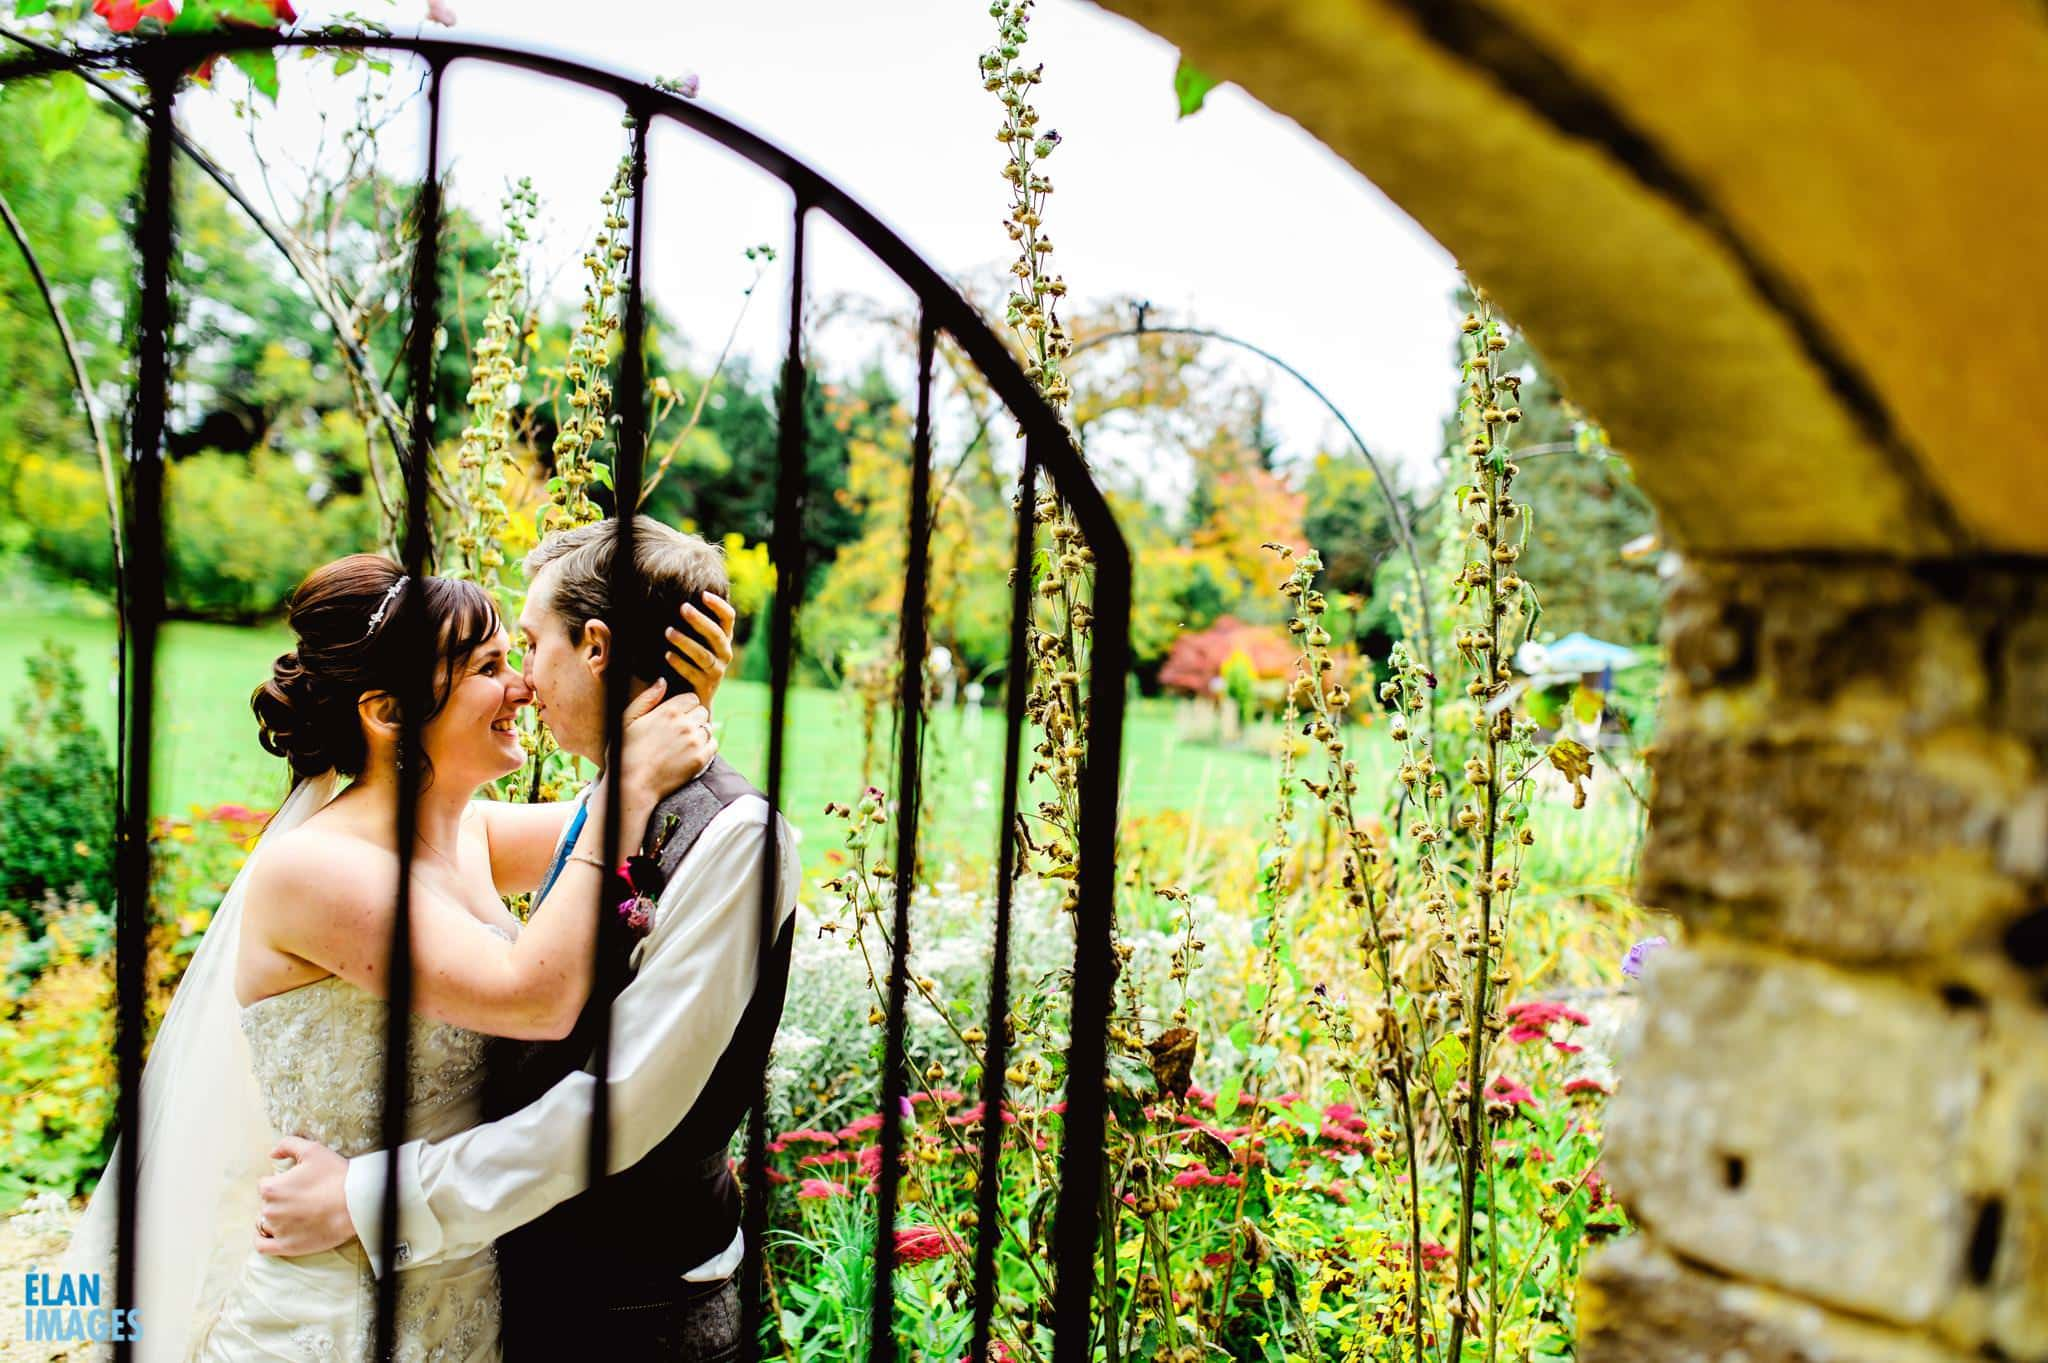 Creative portrait photography at Guyers House gardens